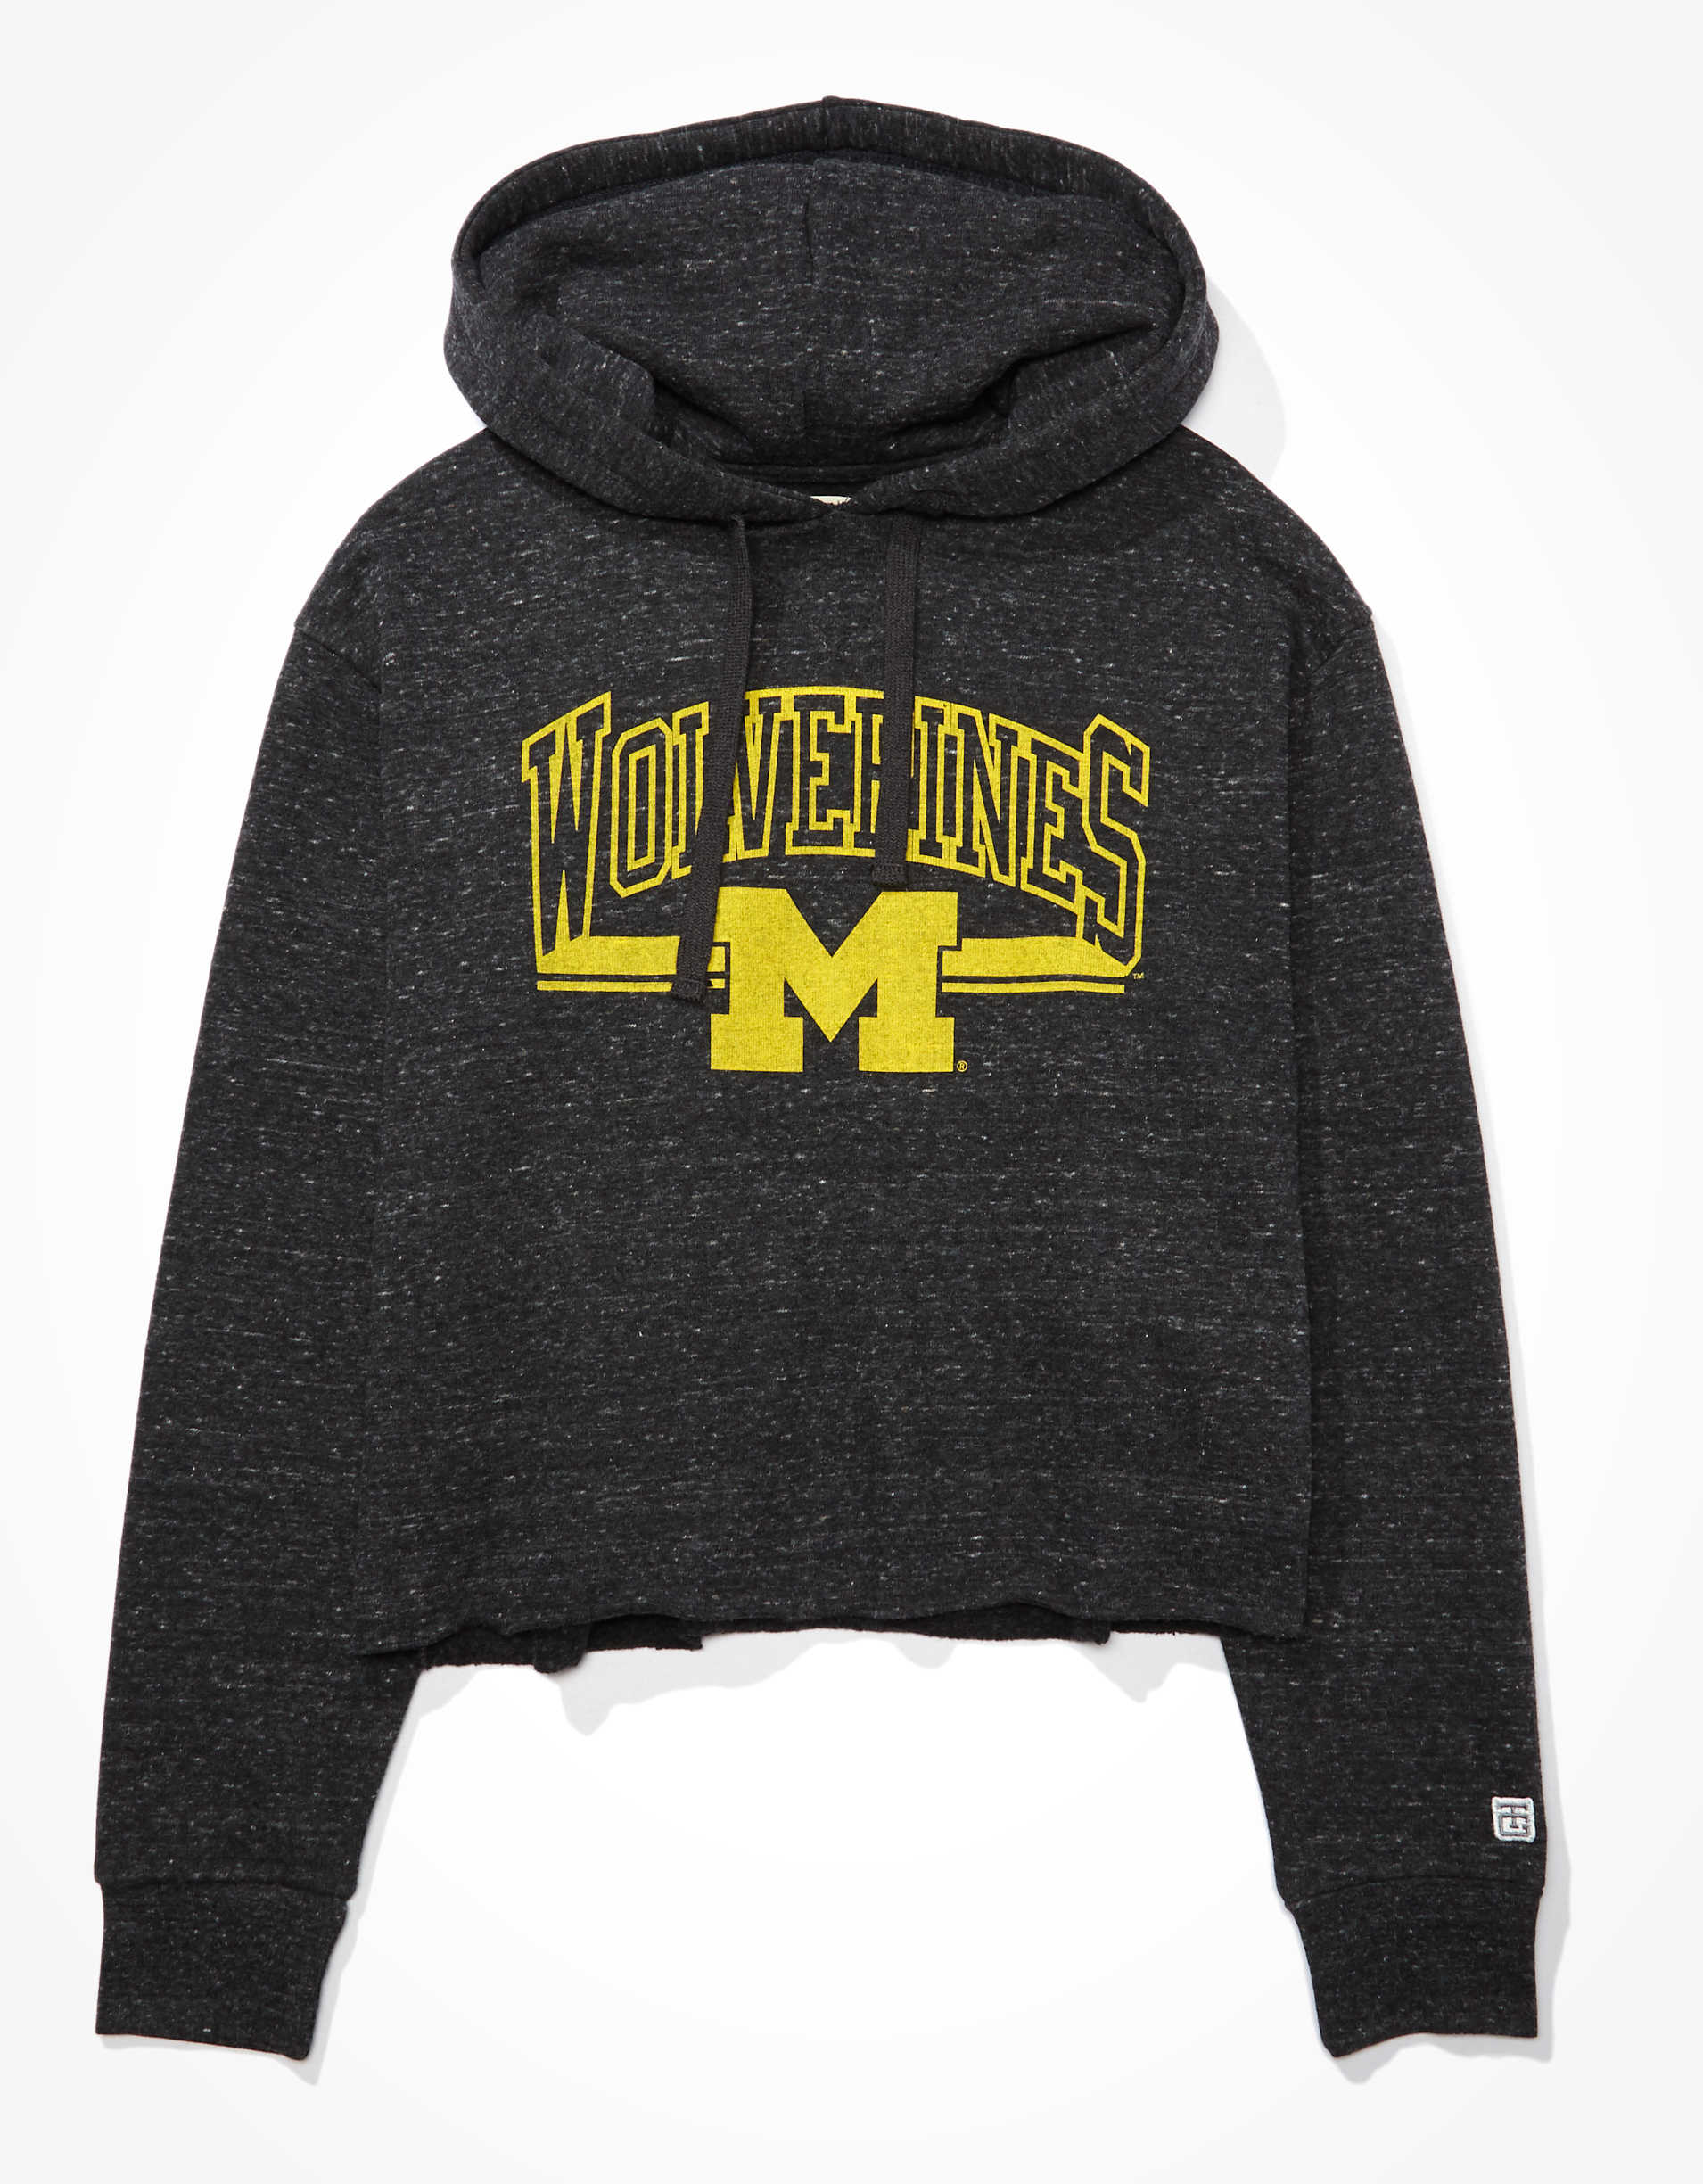 Tailgate Women's Michigan Wolverines Cropped Hoodie